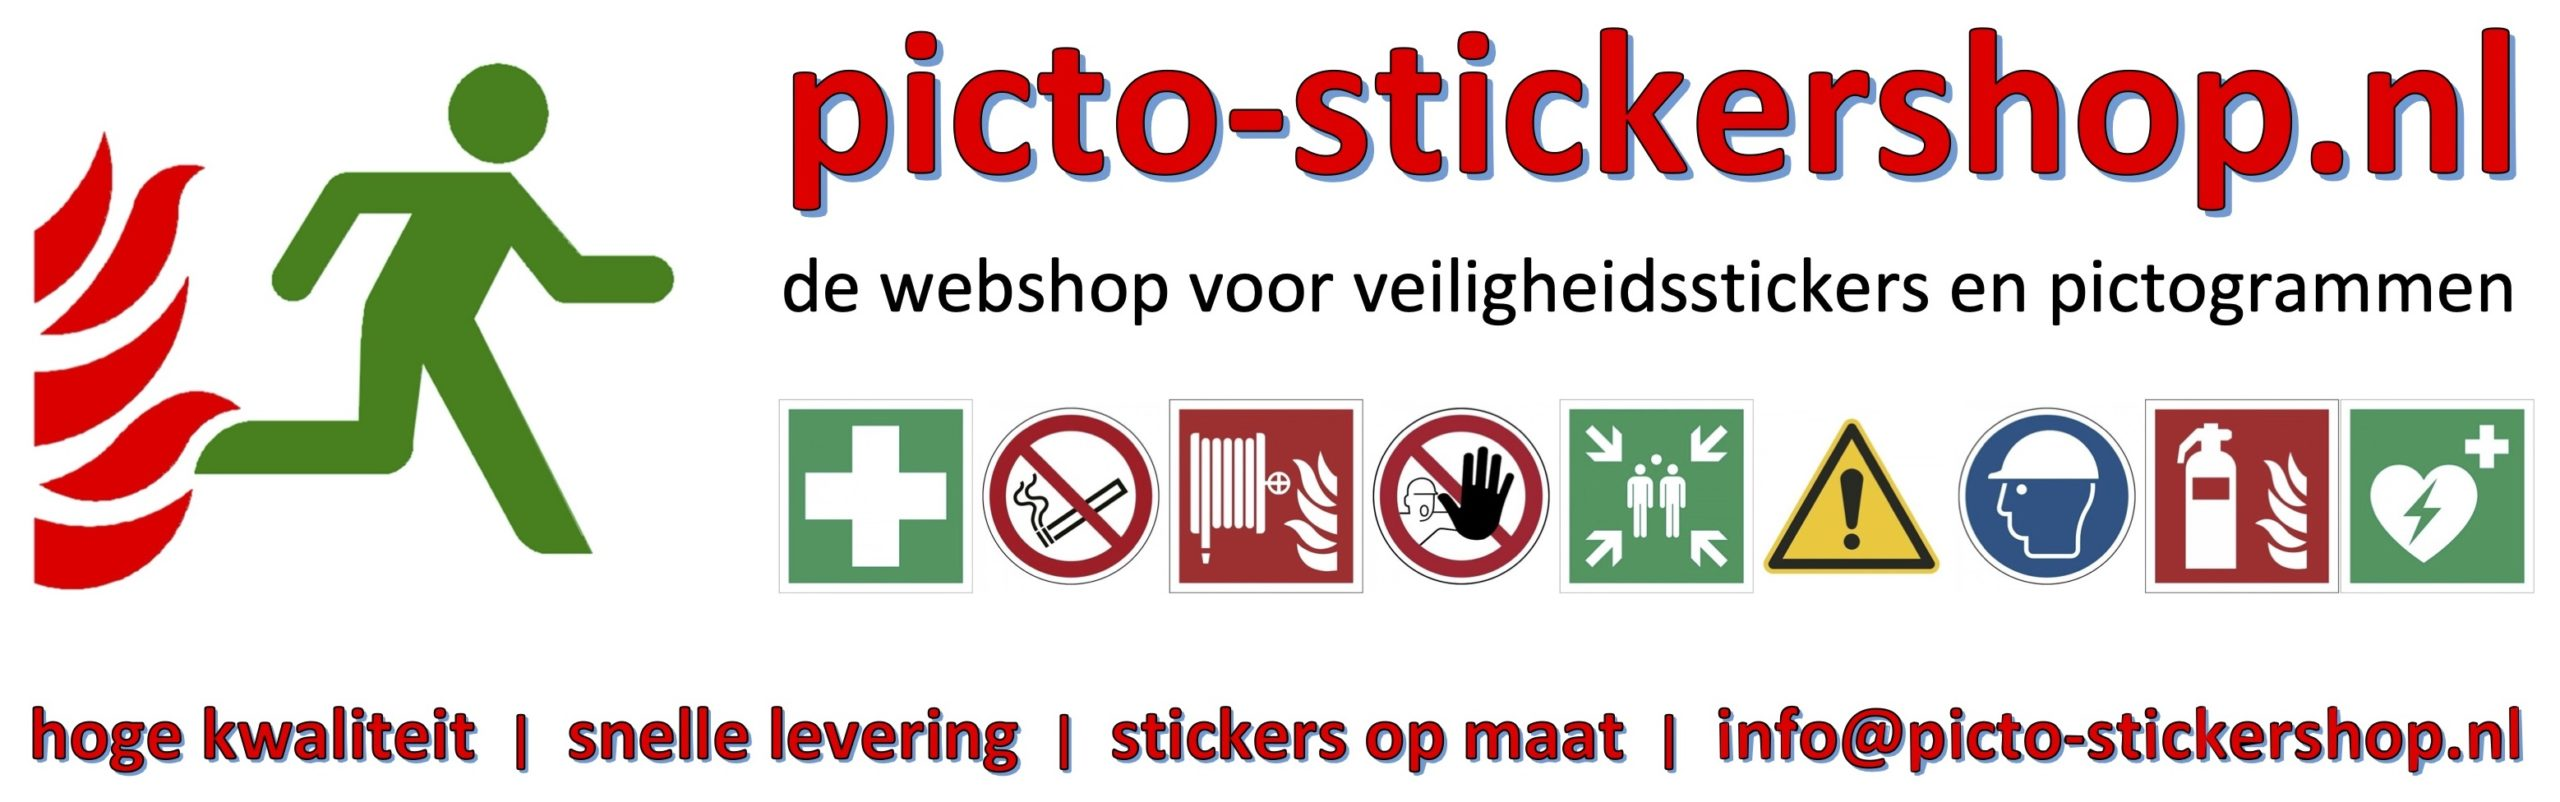 picto-stickershop logo webshop